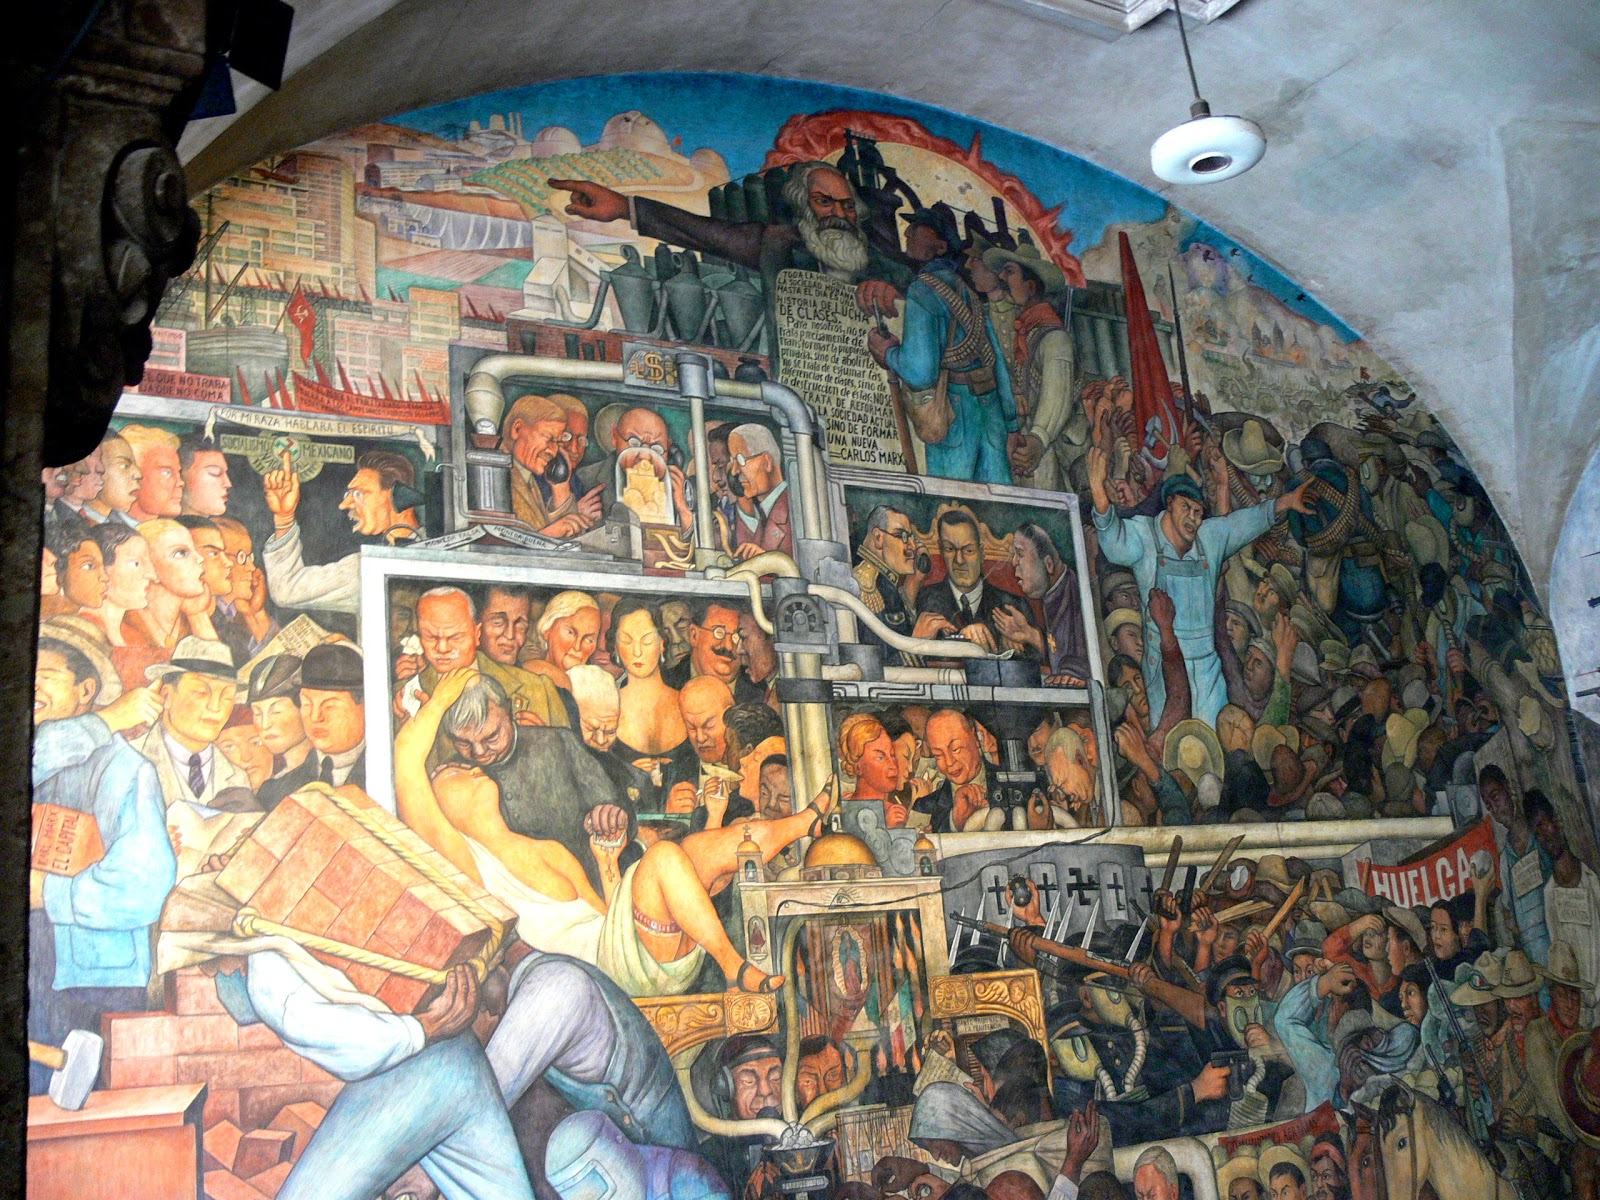 Mexico City - Palacio Nacional. Mural by Diego Rivera showing the History of Mexico: Detail showing the betrayed revolution.